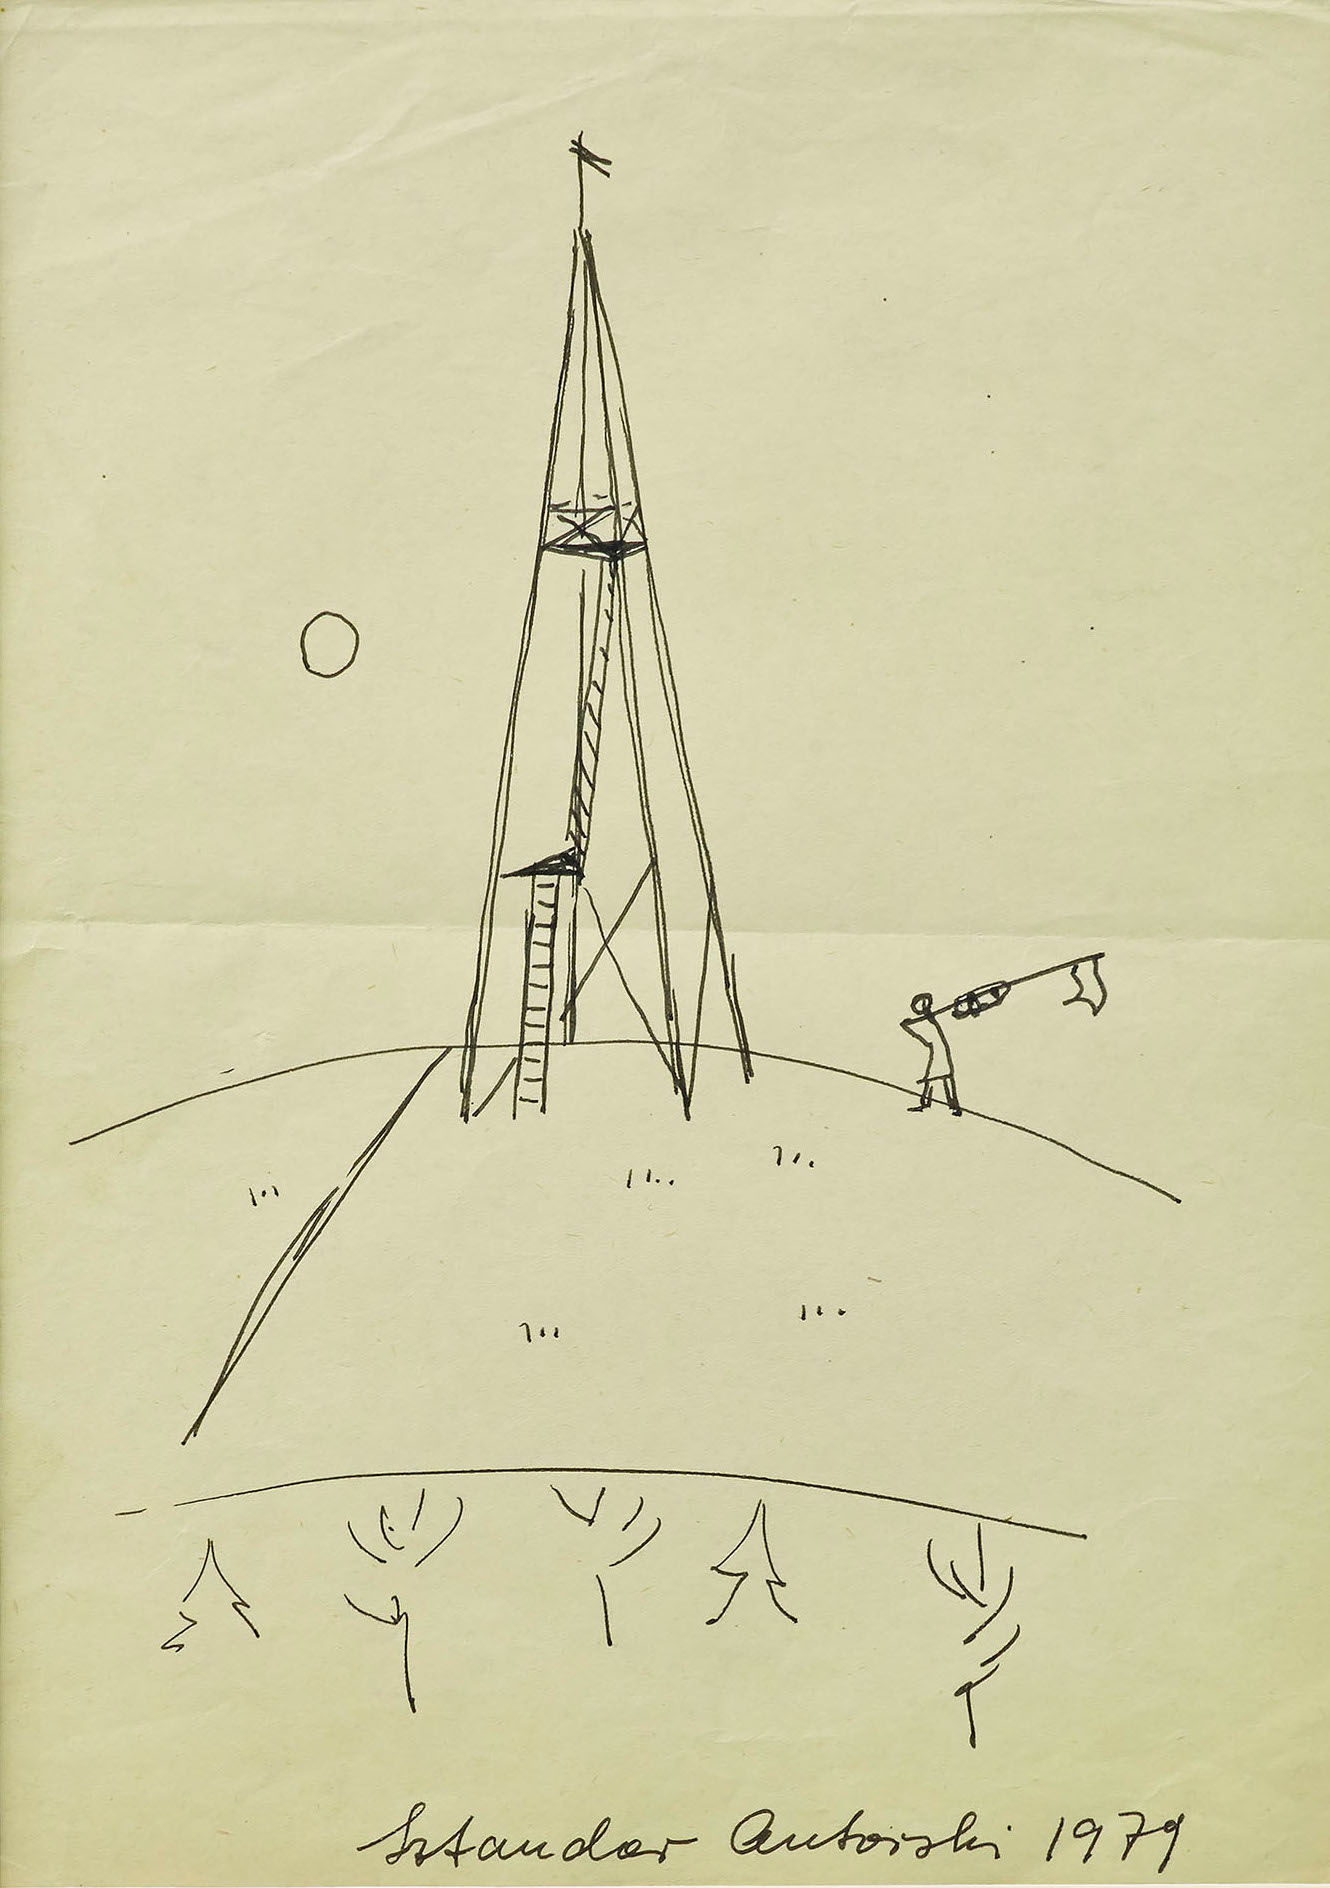 Maria Pinińska-Bereś 1979 Sketch to the performance Author'sFlag made on the Prokocim hills in Krakow pen on paper